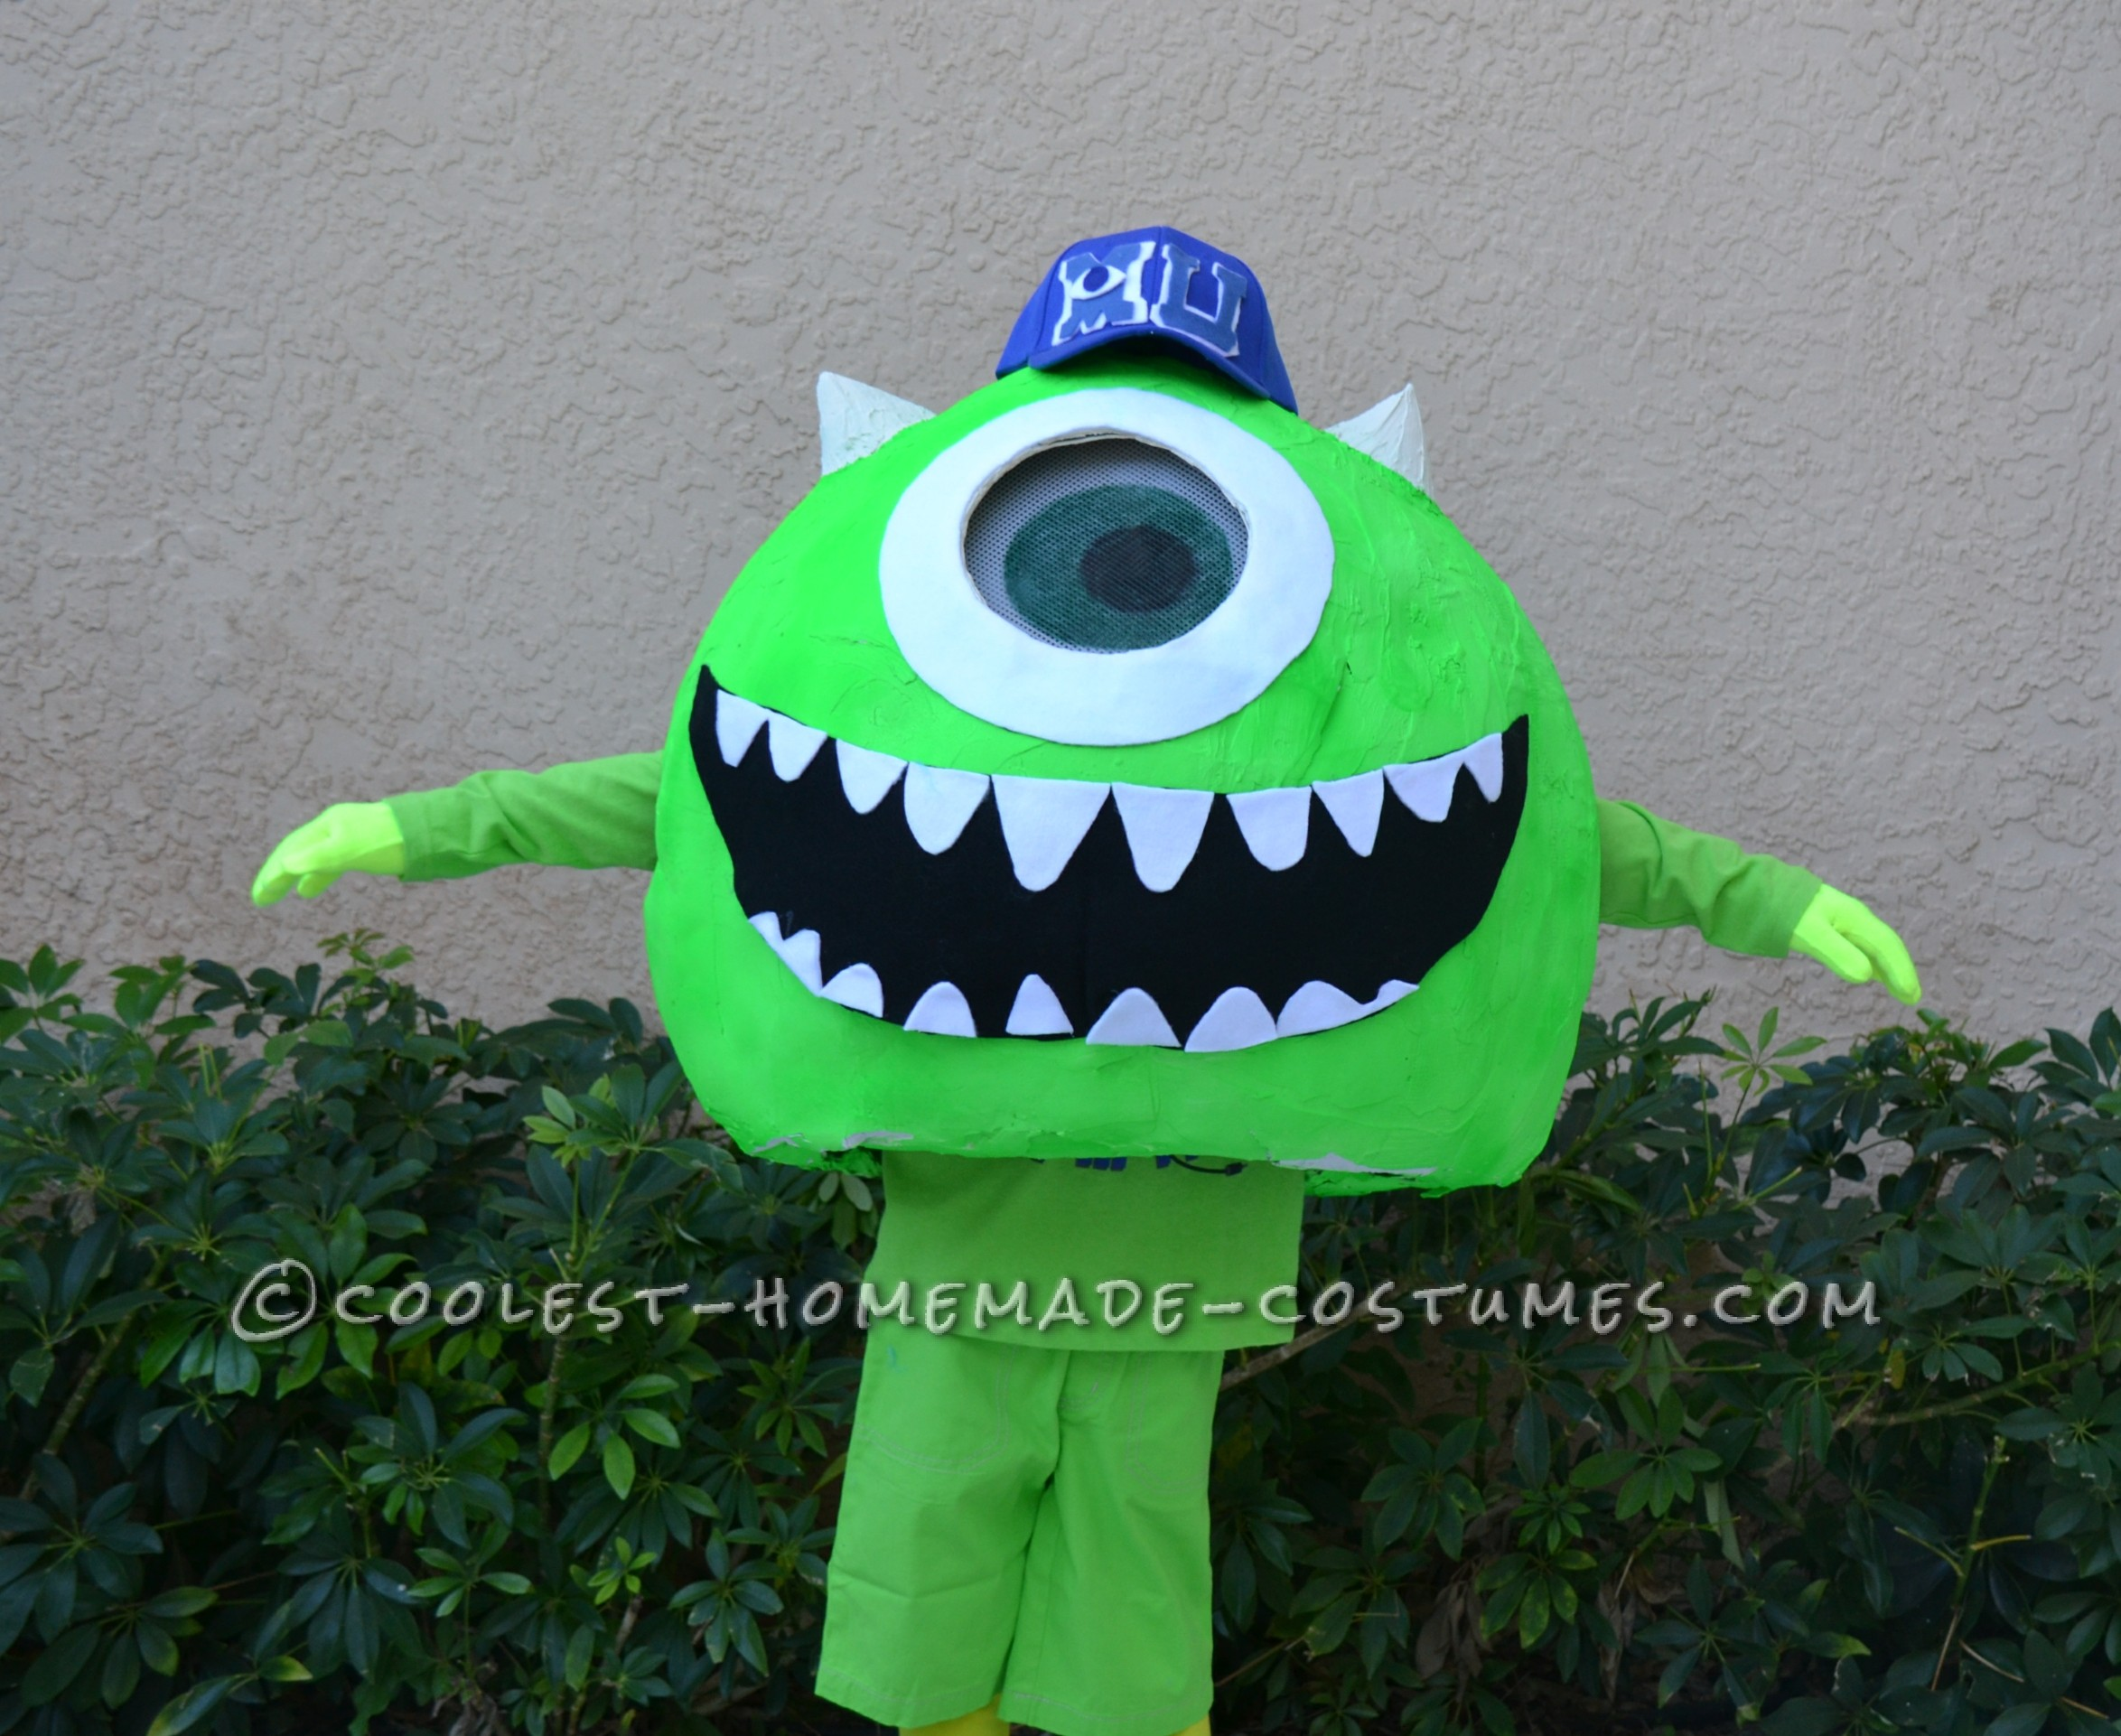 Coolest Homemade Mike Wazoski Halloween Costume